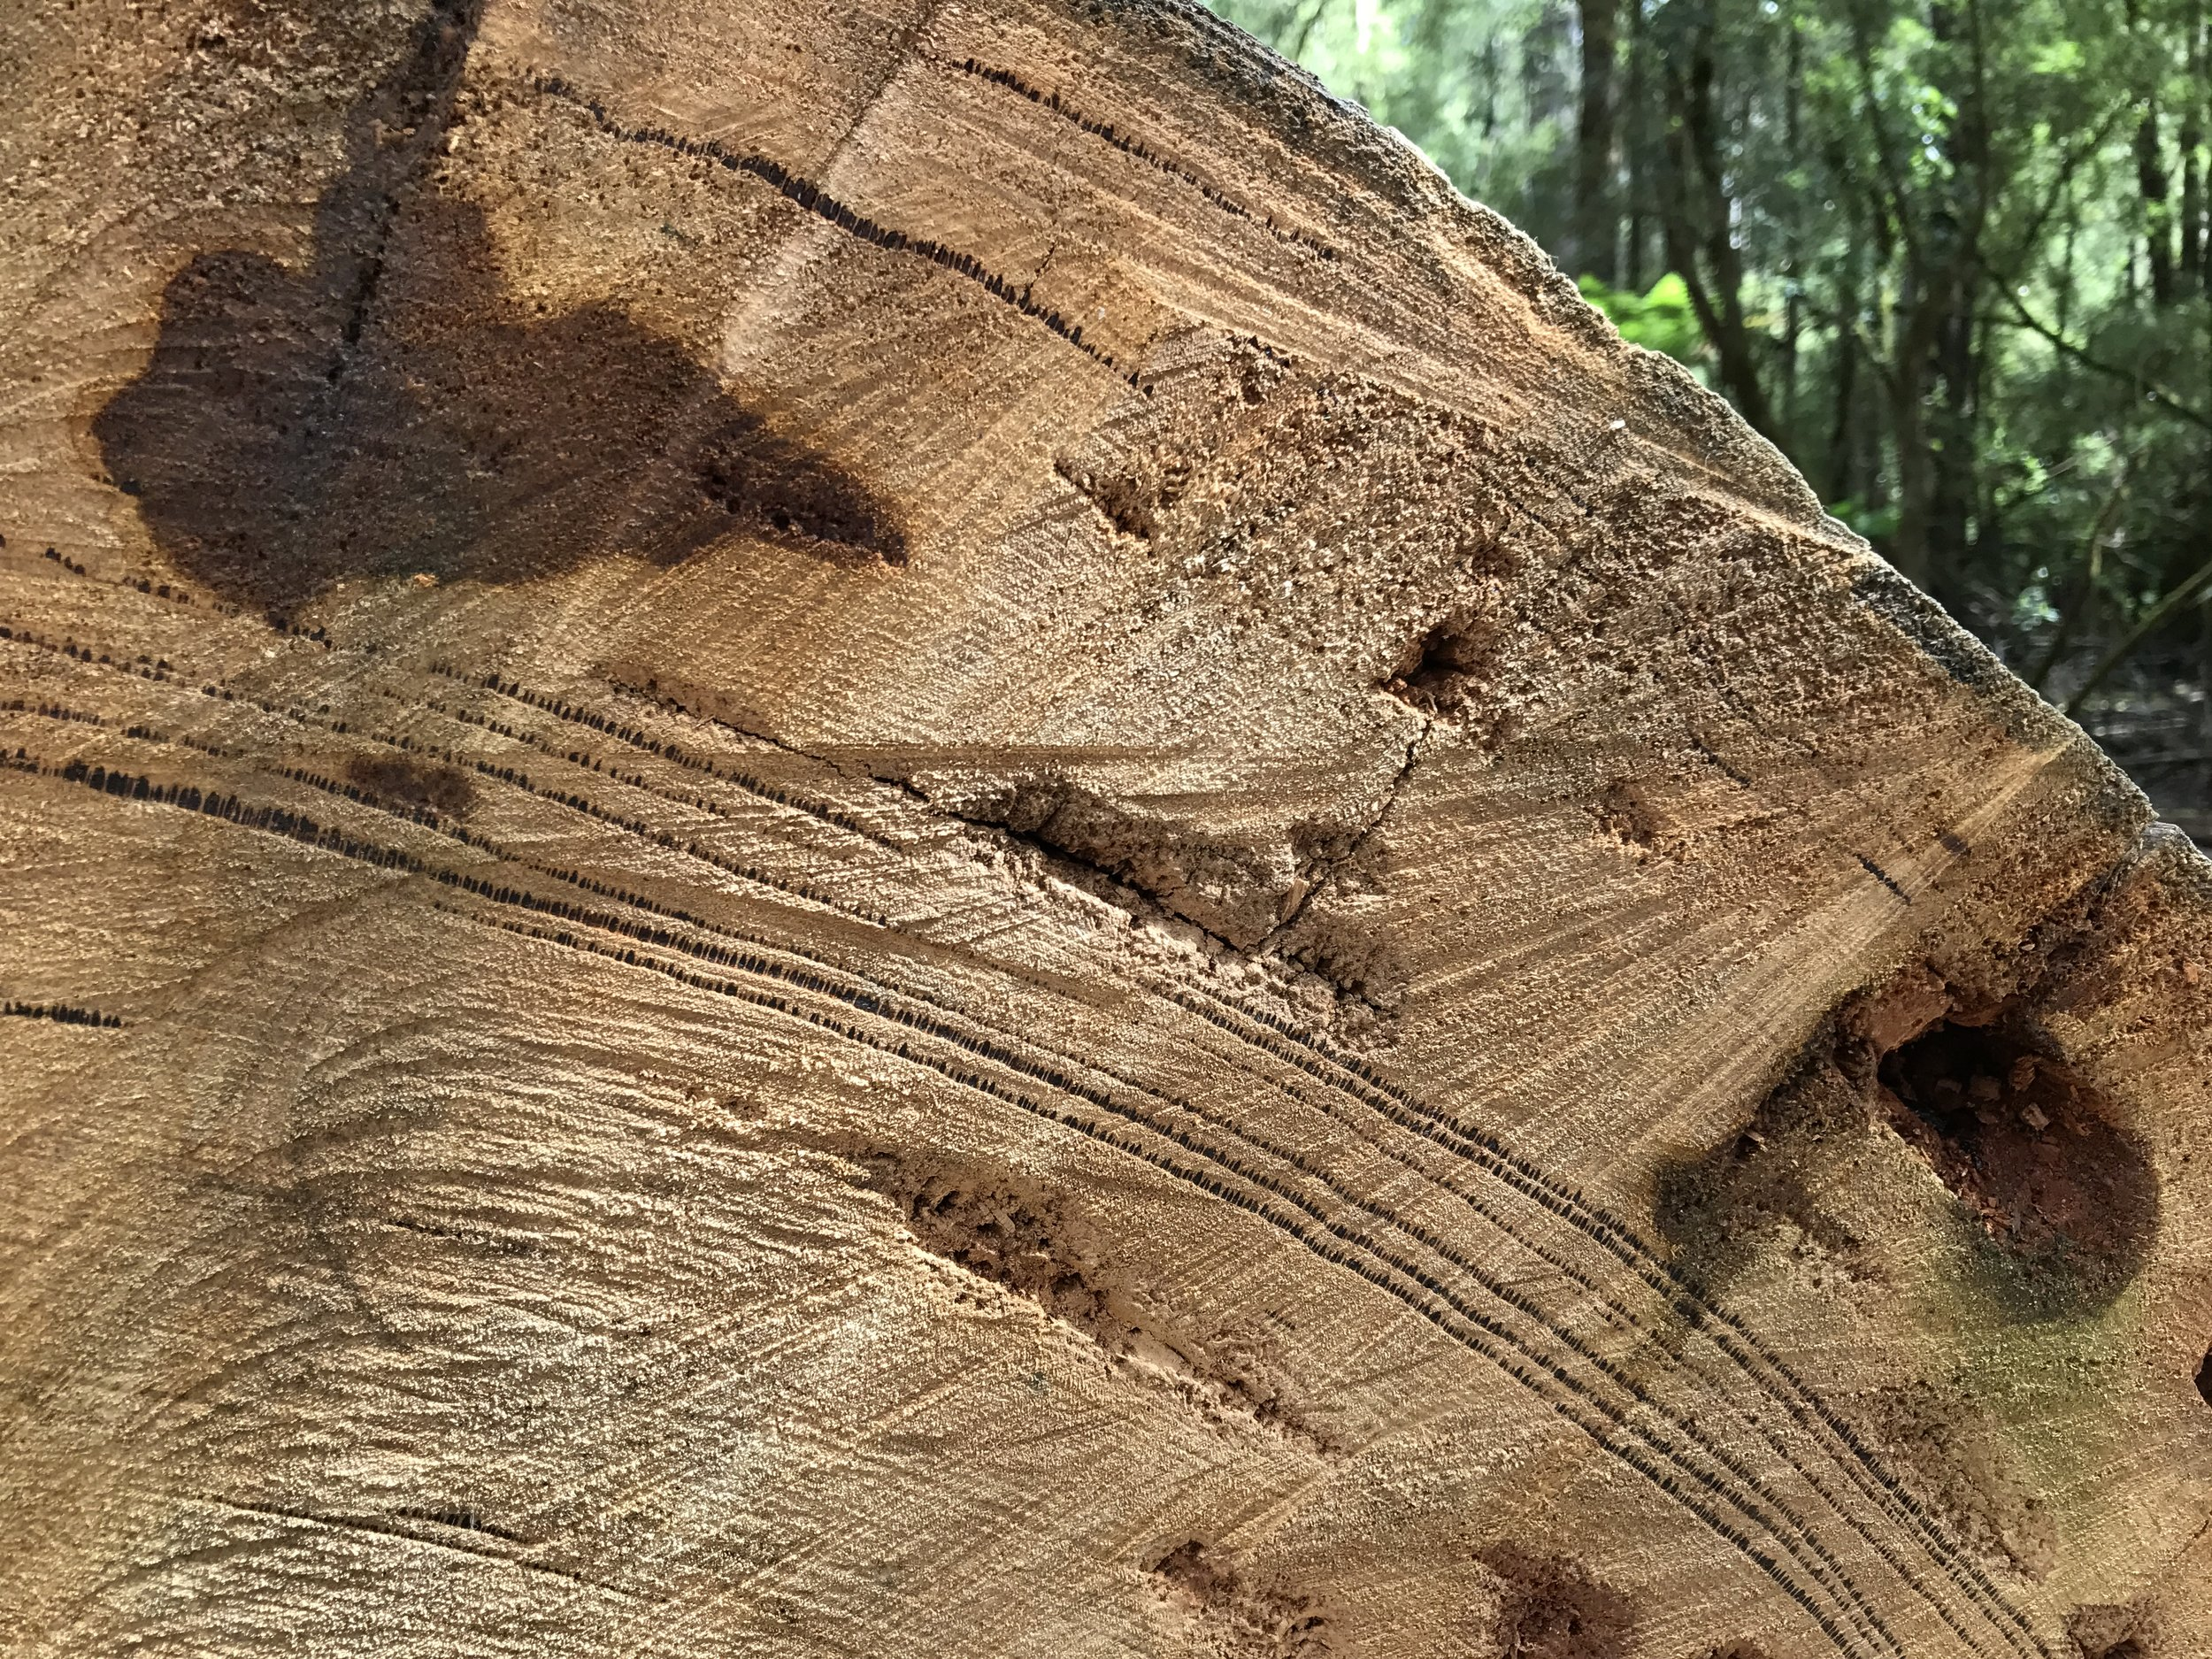 You can see the dark layers in the tree rings